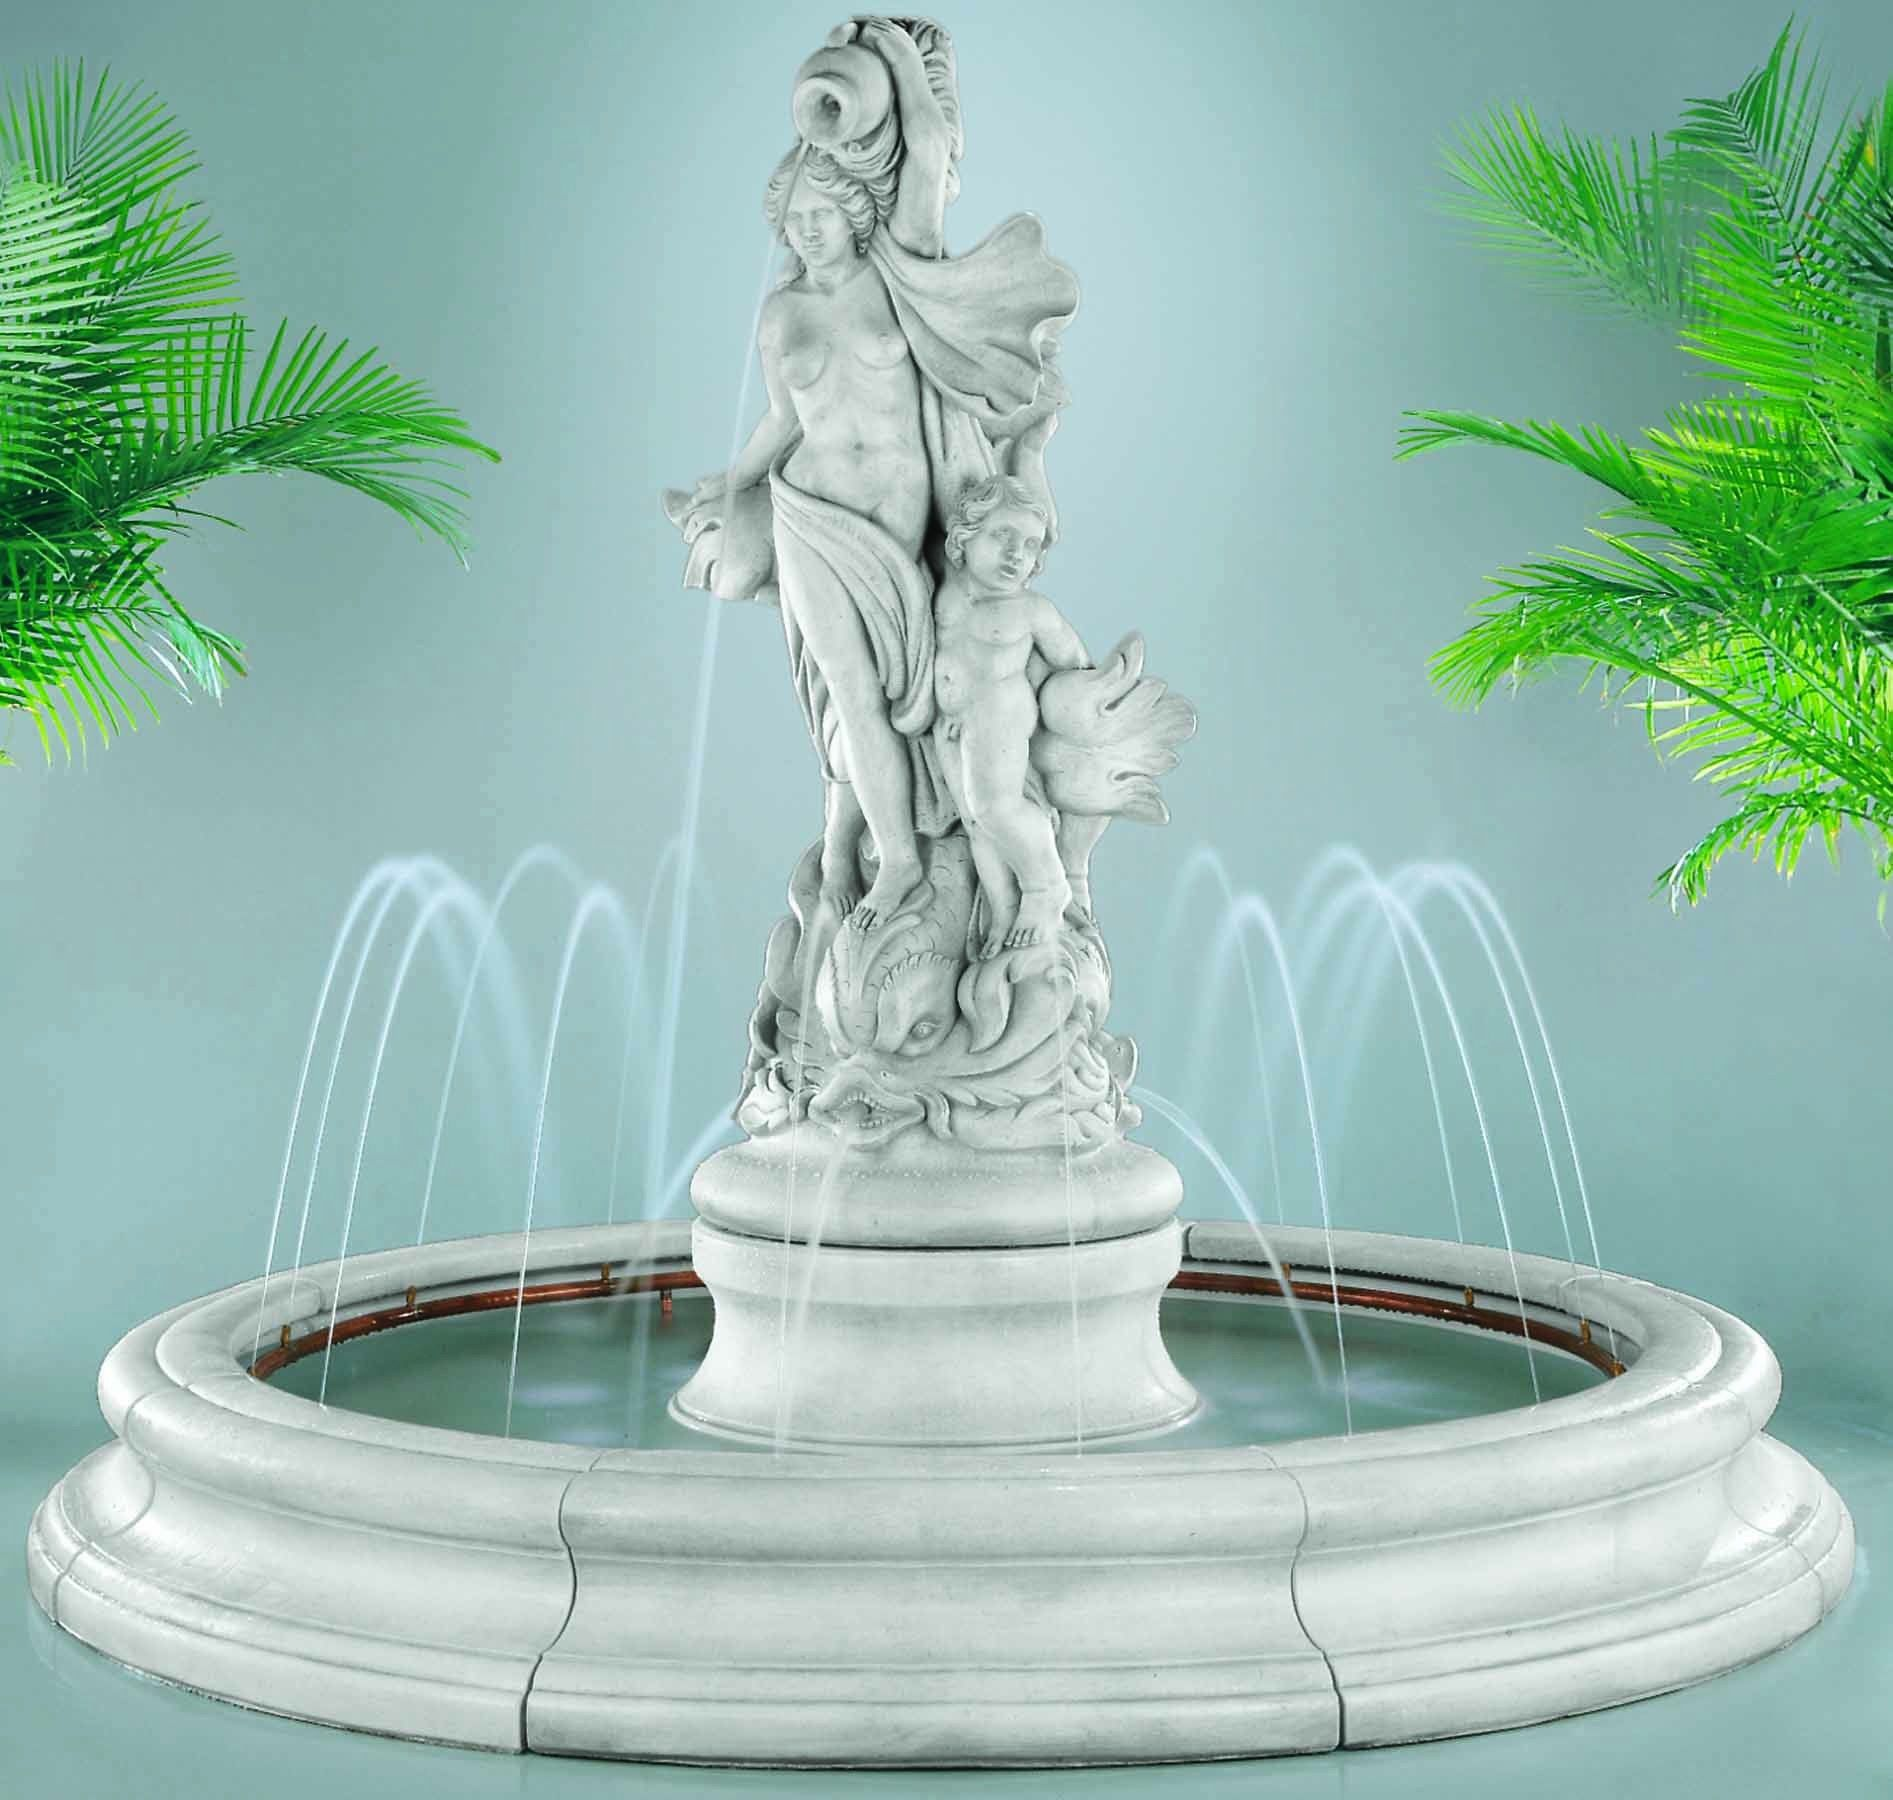 Water Feature SupplyFloor Water Walls, Wall Hanging Water Fountains, And  Custom Made Water Feature